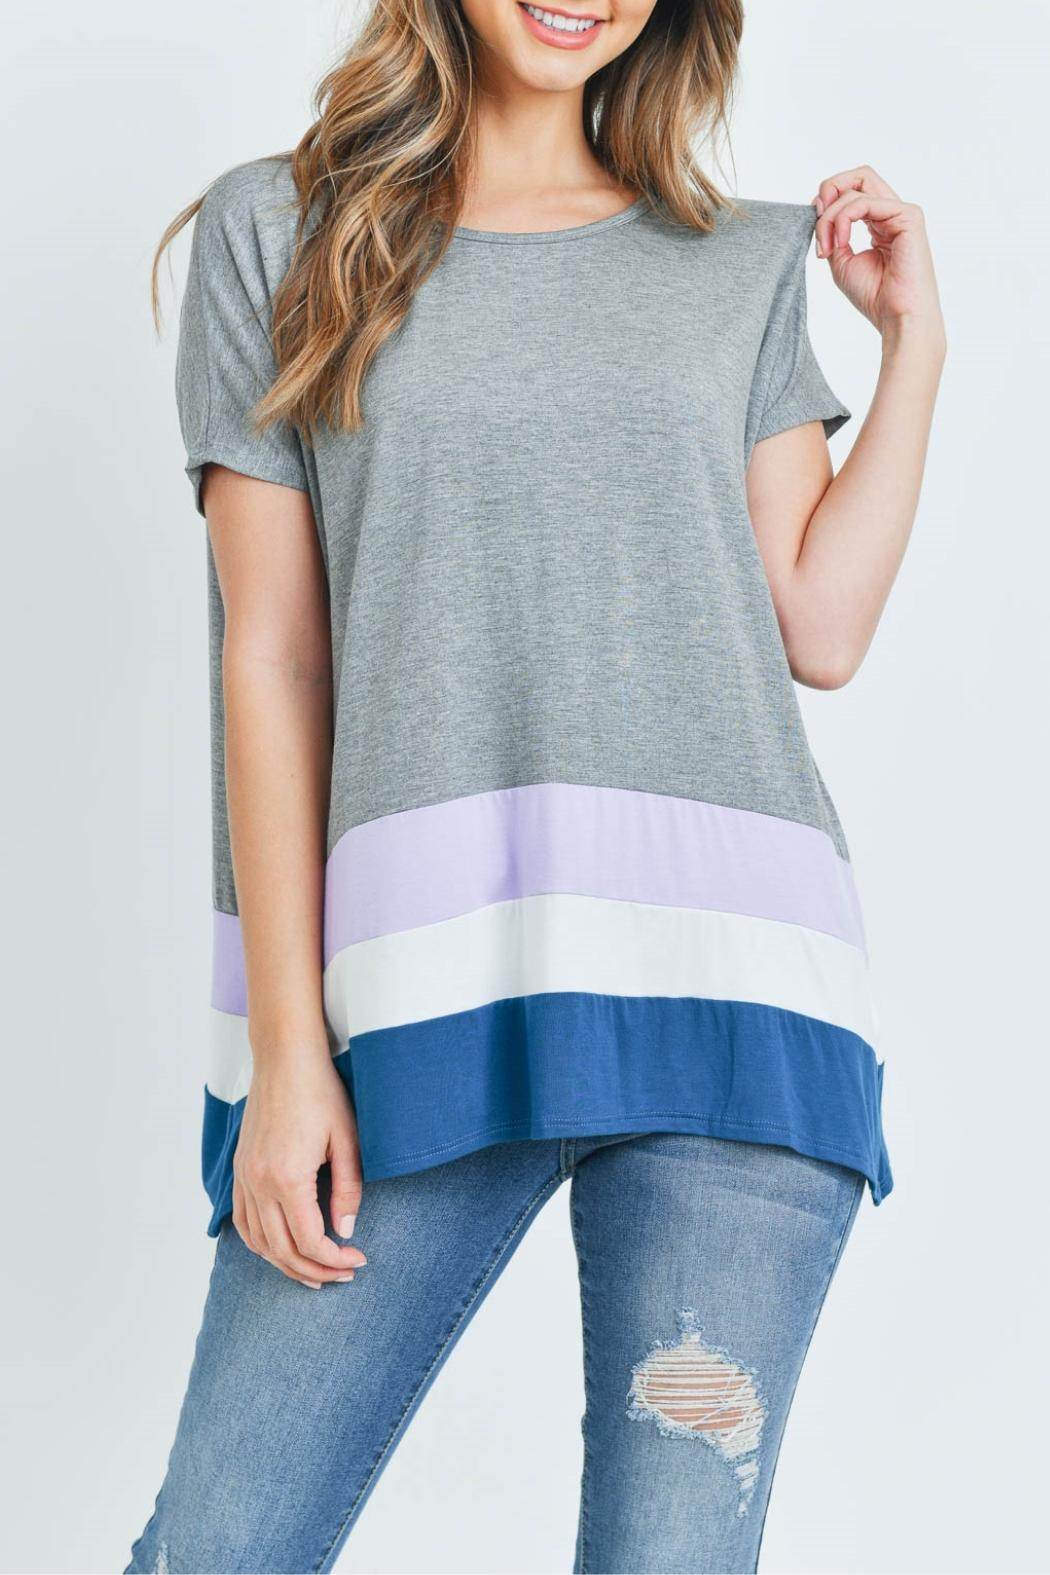 Unbranded Gray Bamboo Top - Main Image